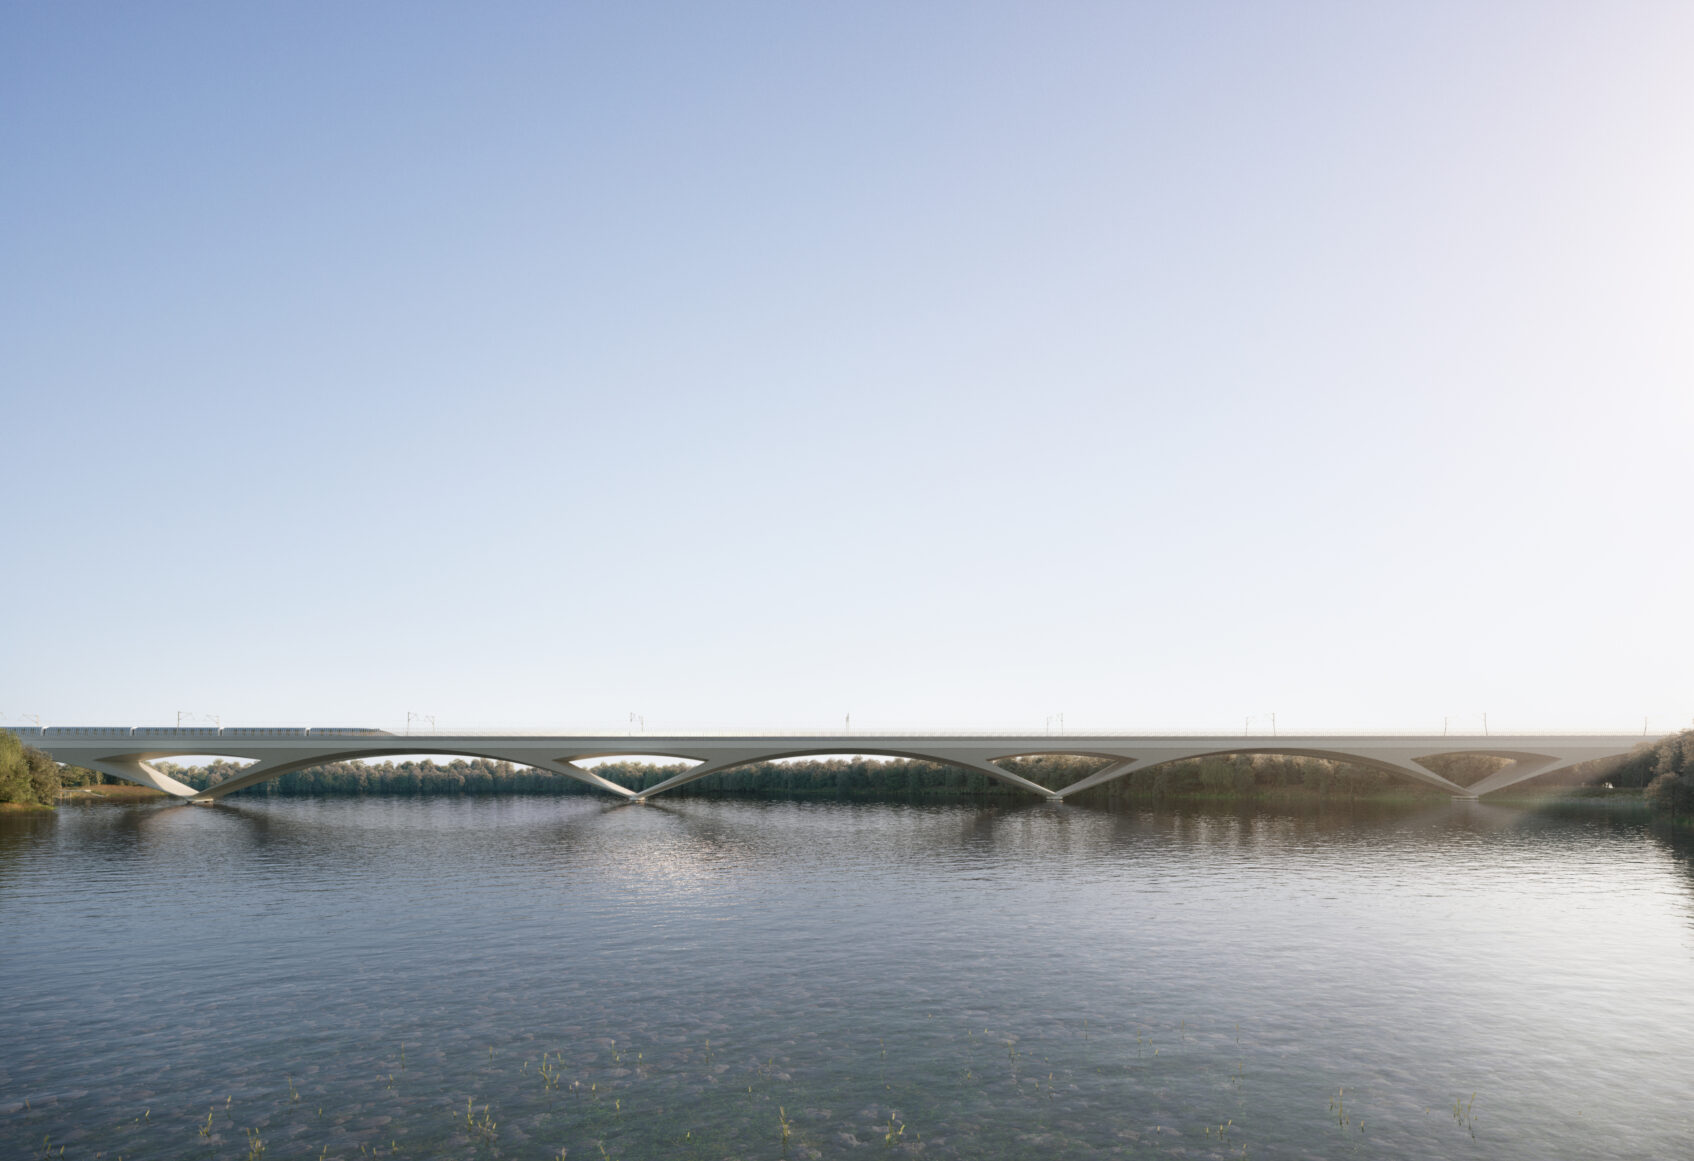 Distant visualisation of the viaduct crossing the water